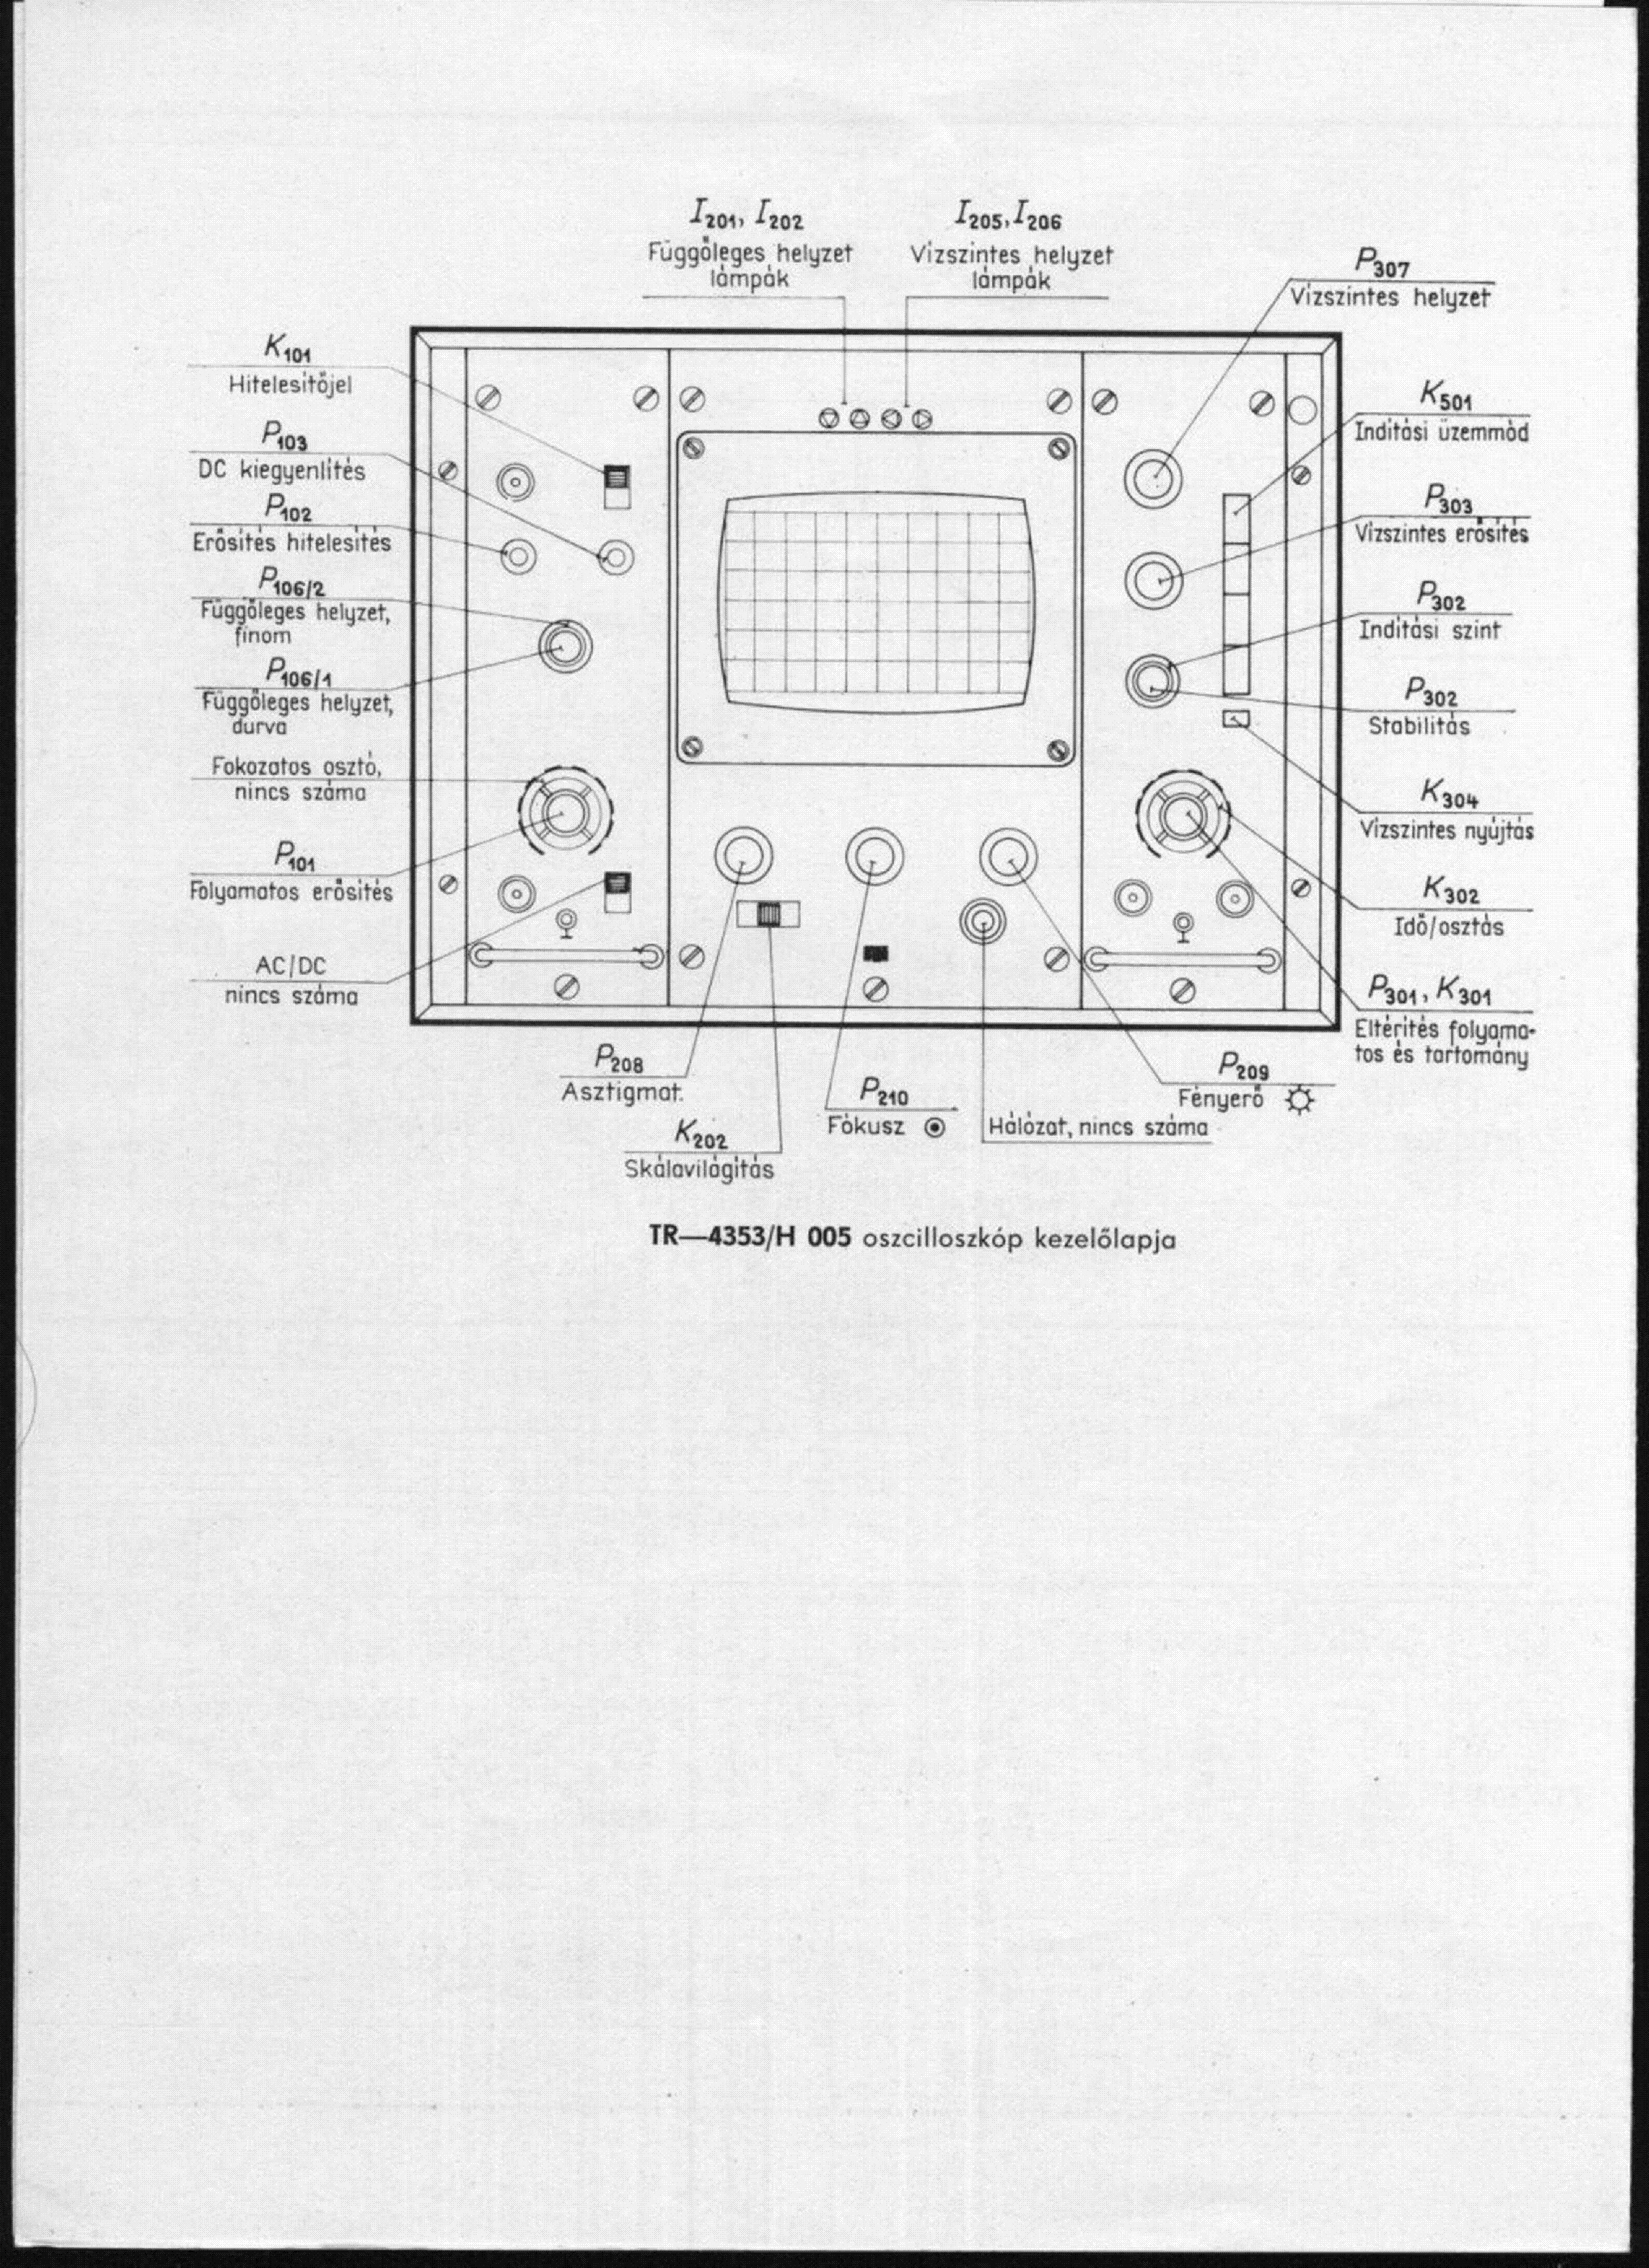 HTSZ TR-4353 H 005 SM service manual (2nd page)